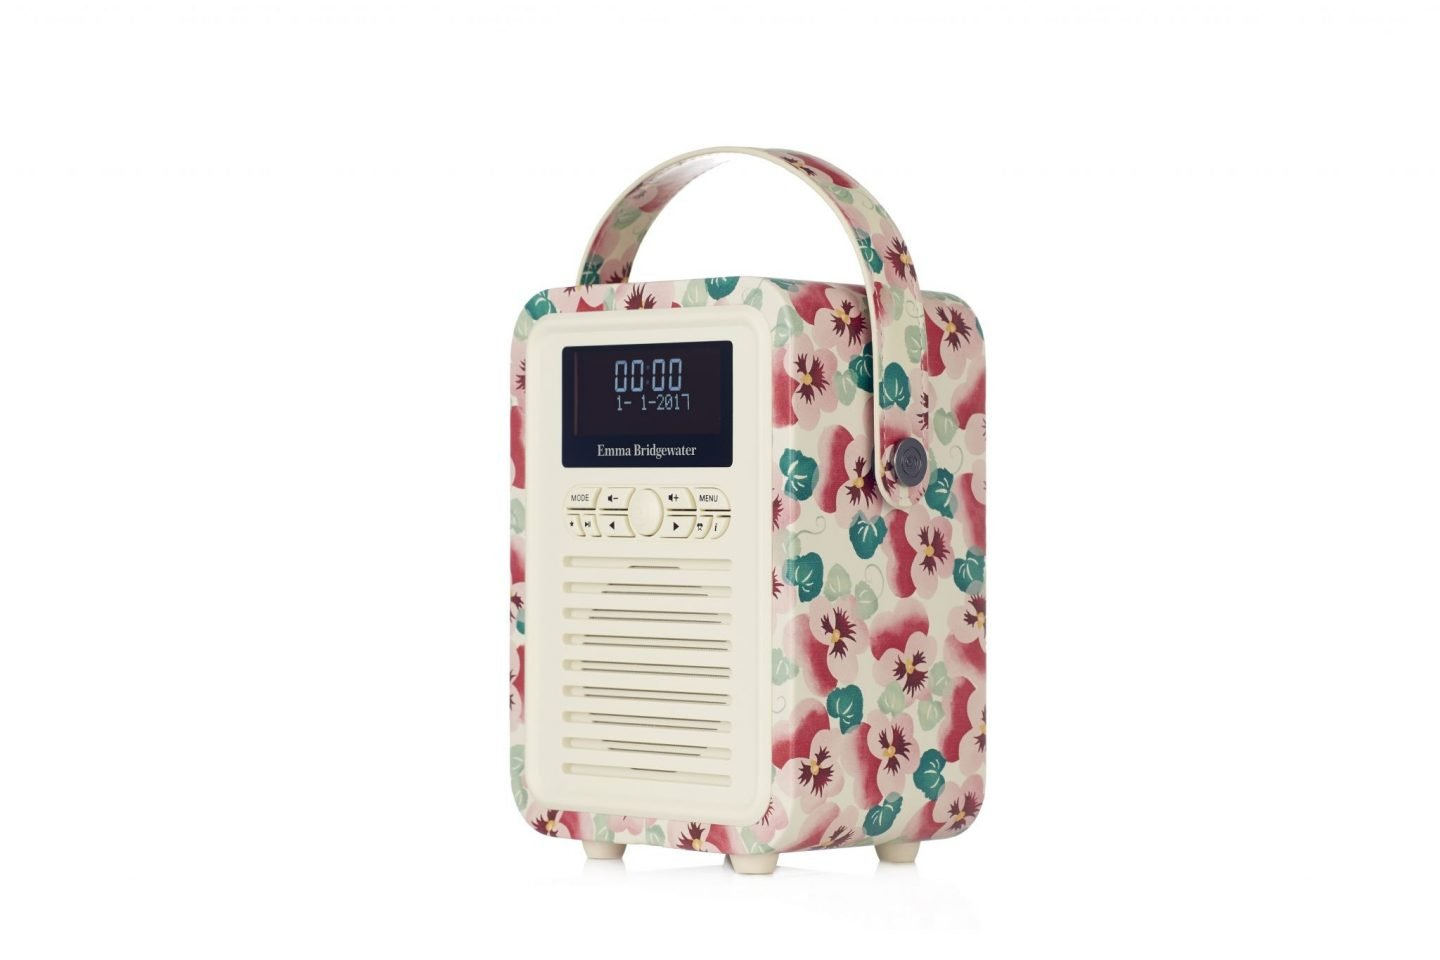 512644 Emma Bridgewater Retro Mini Portable DABFM Radio and Bluetooth Sp...-2